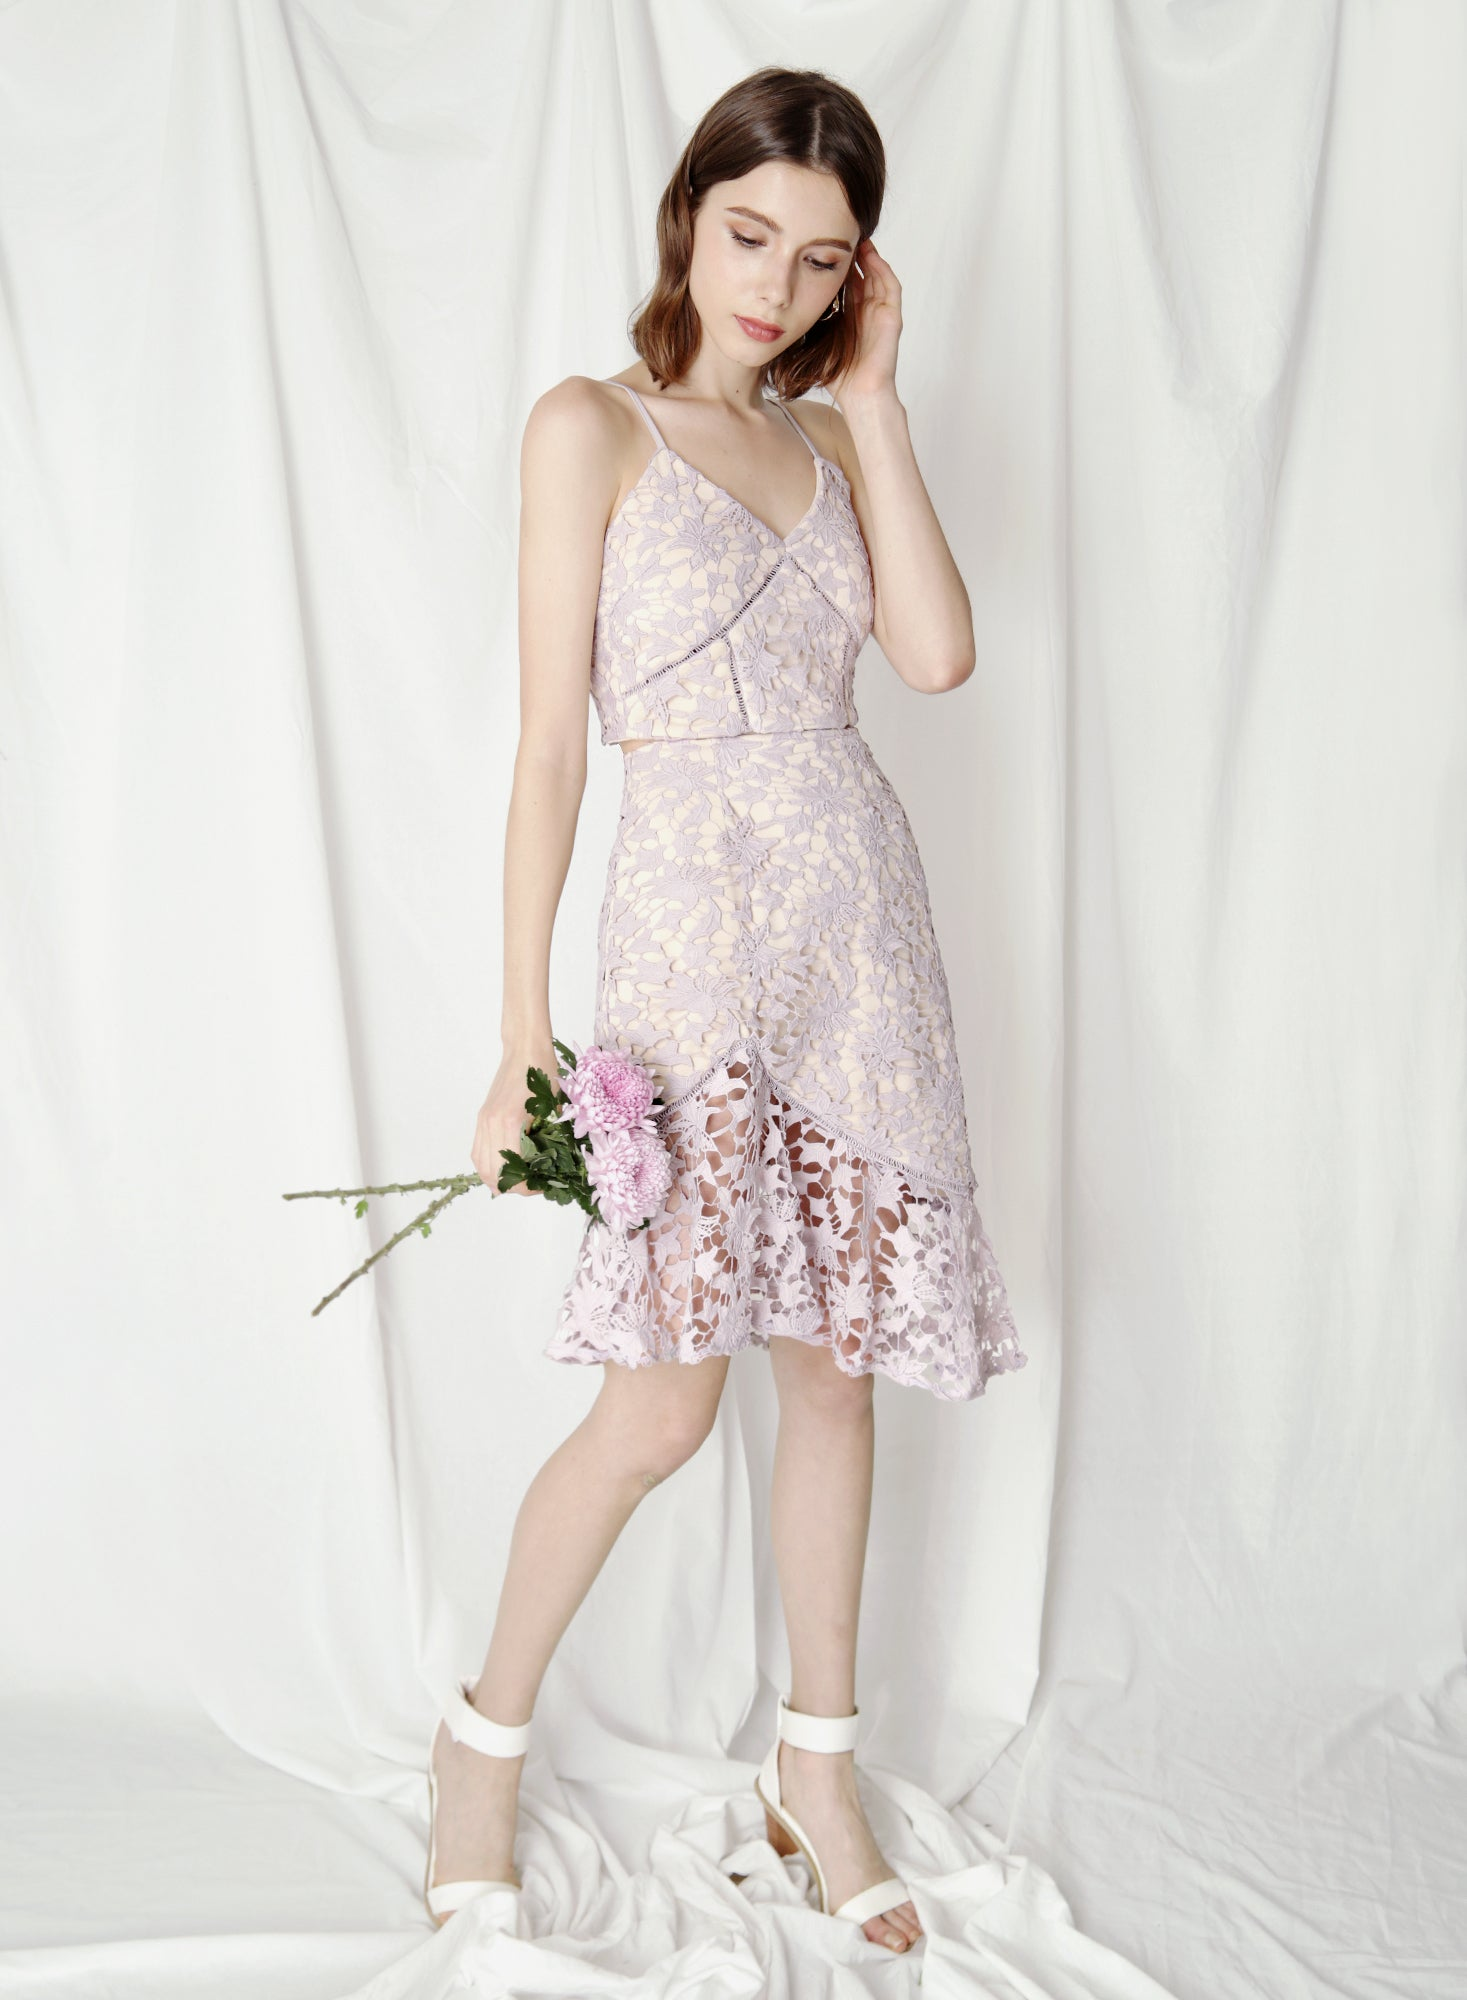 Oath Crochet Lace Skirt (Lilac) at $ 38.50 only sold at And Well Dressed Online Fashion Store Singapore